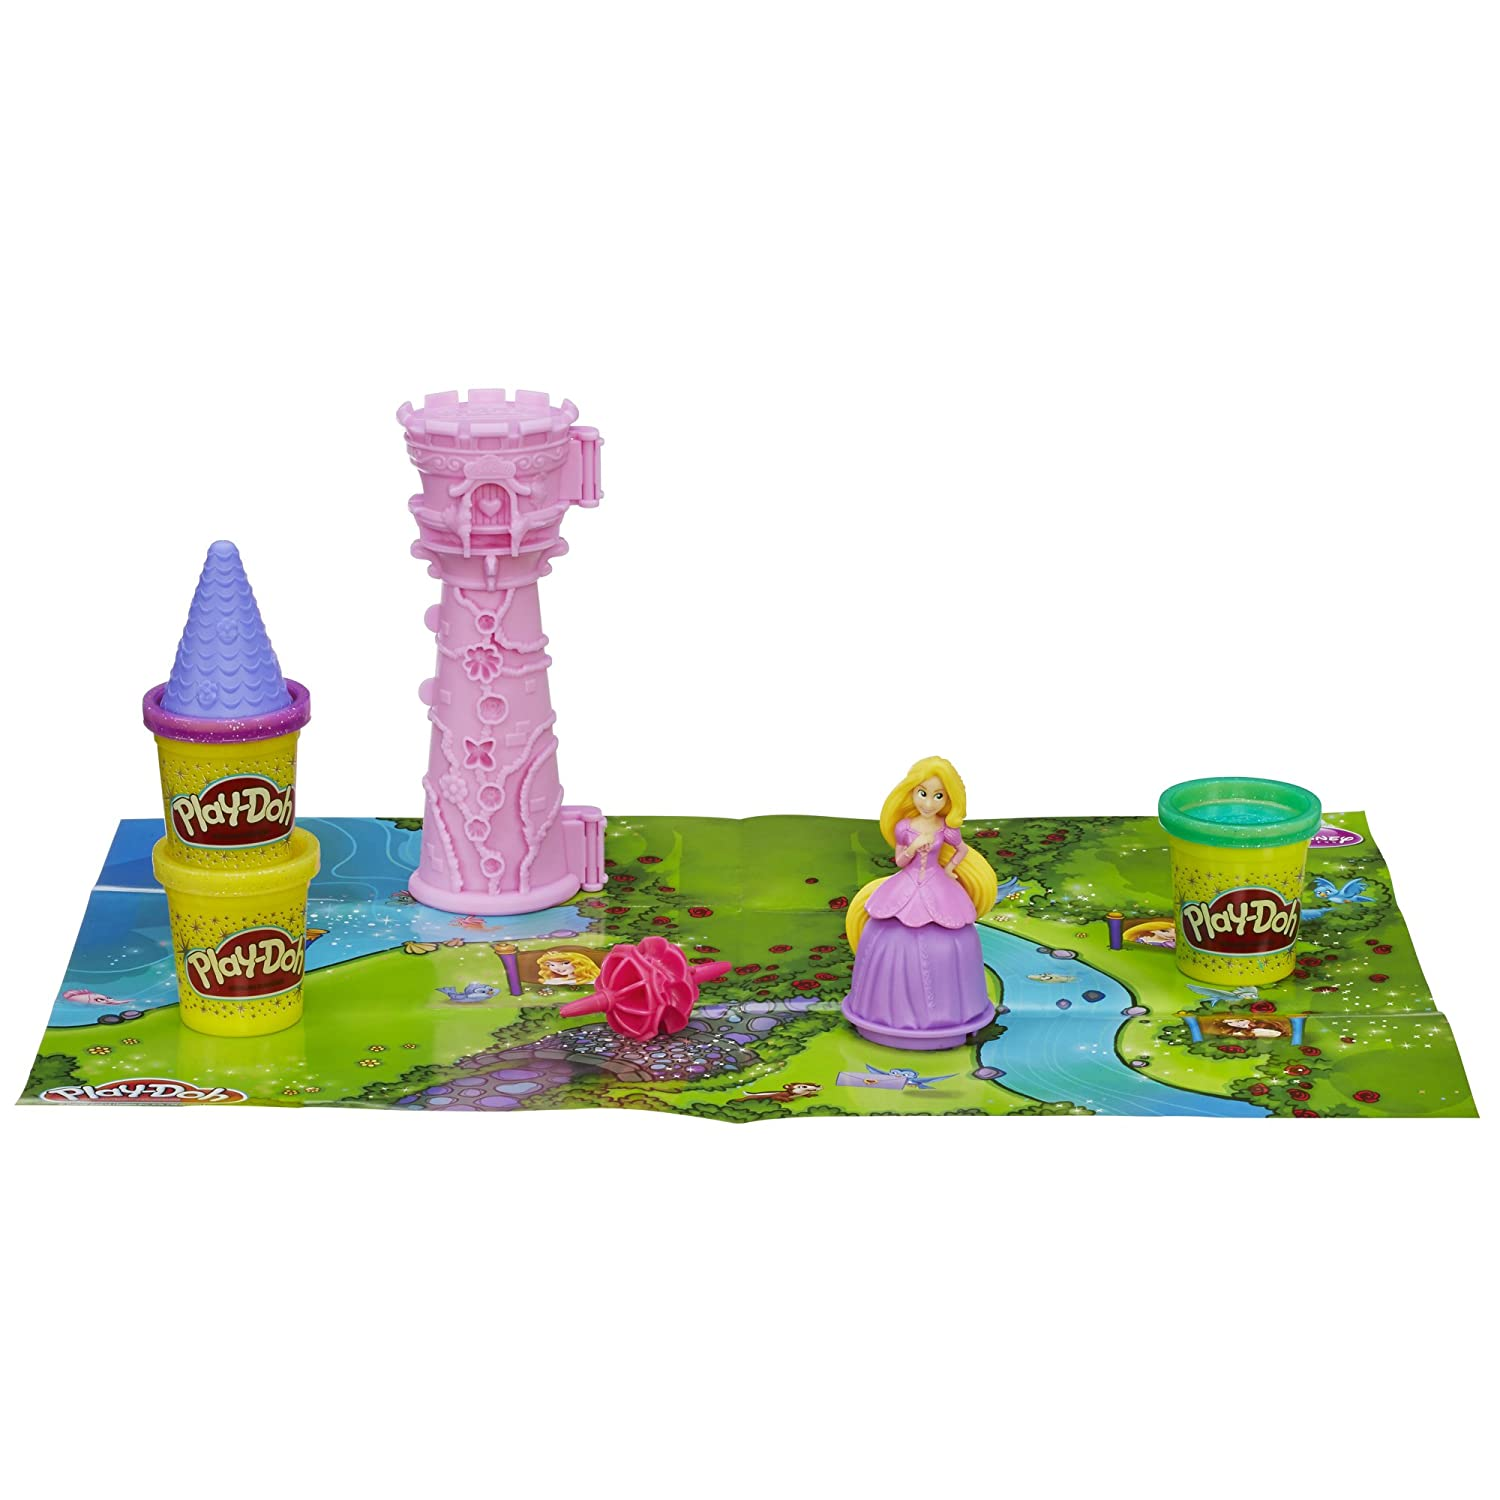 Play Doh Disney Princess Rapunzel's Tower